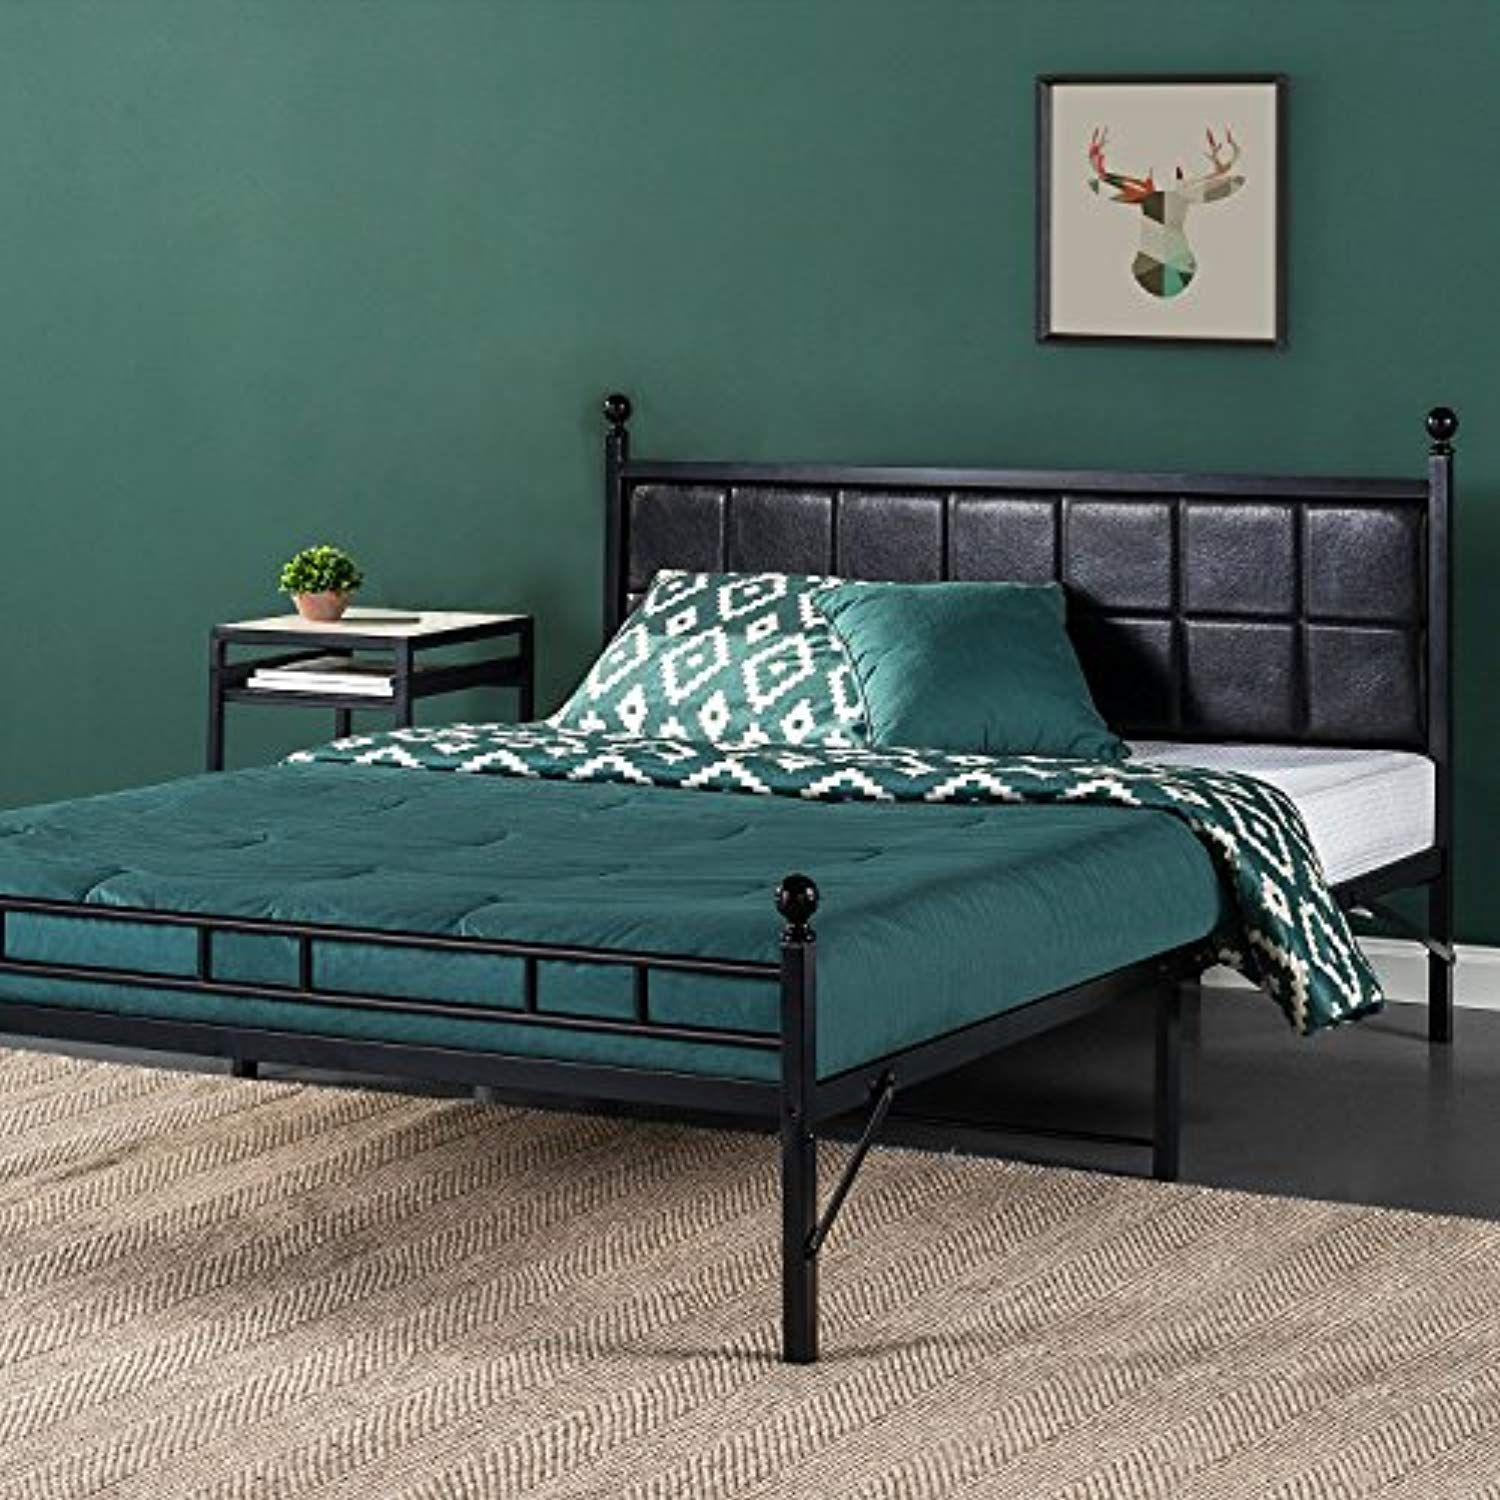 Zinus Metal Platform Bed Bed Frame With Faux Leather Square